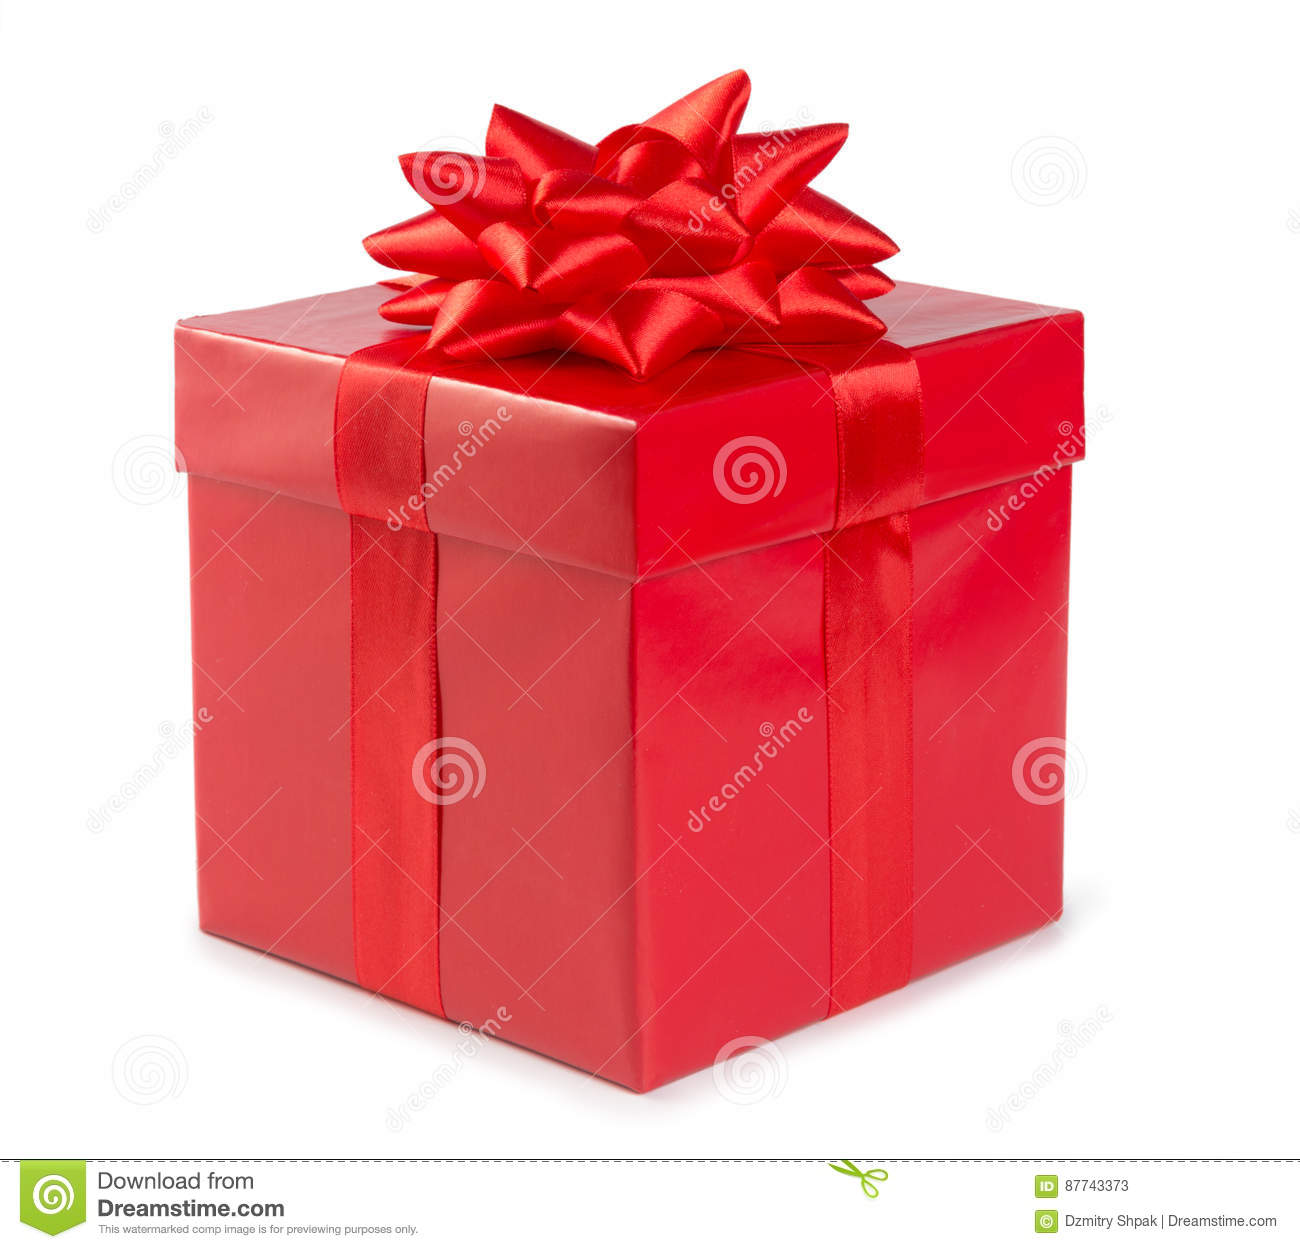 Red gift box with ribbon isolated on white background